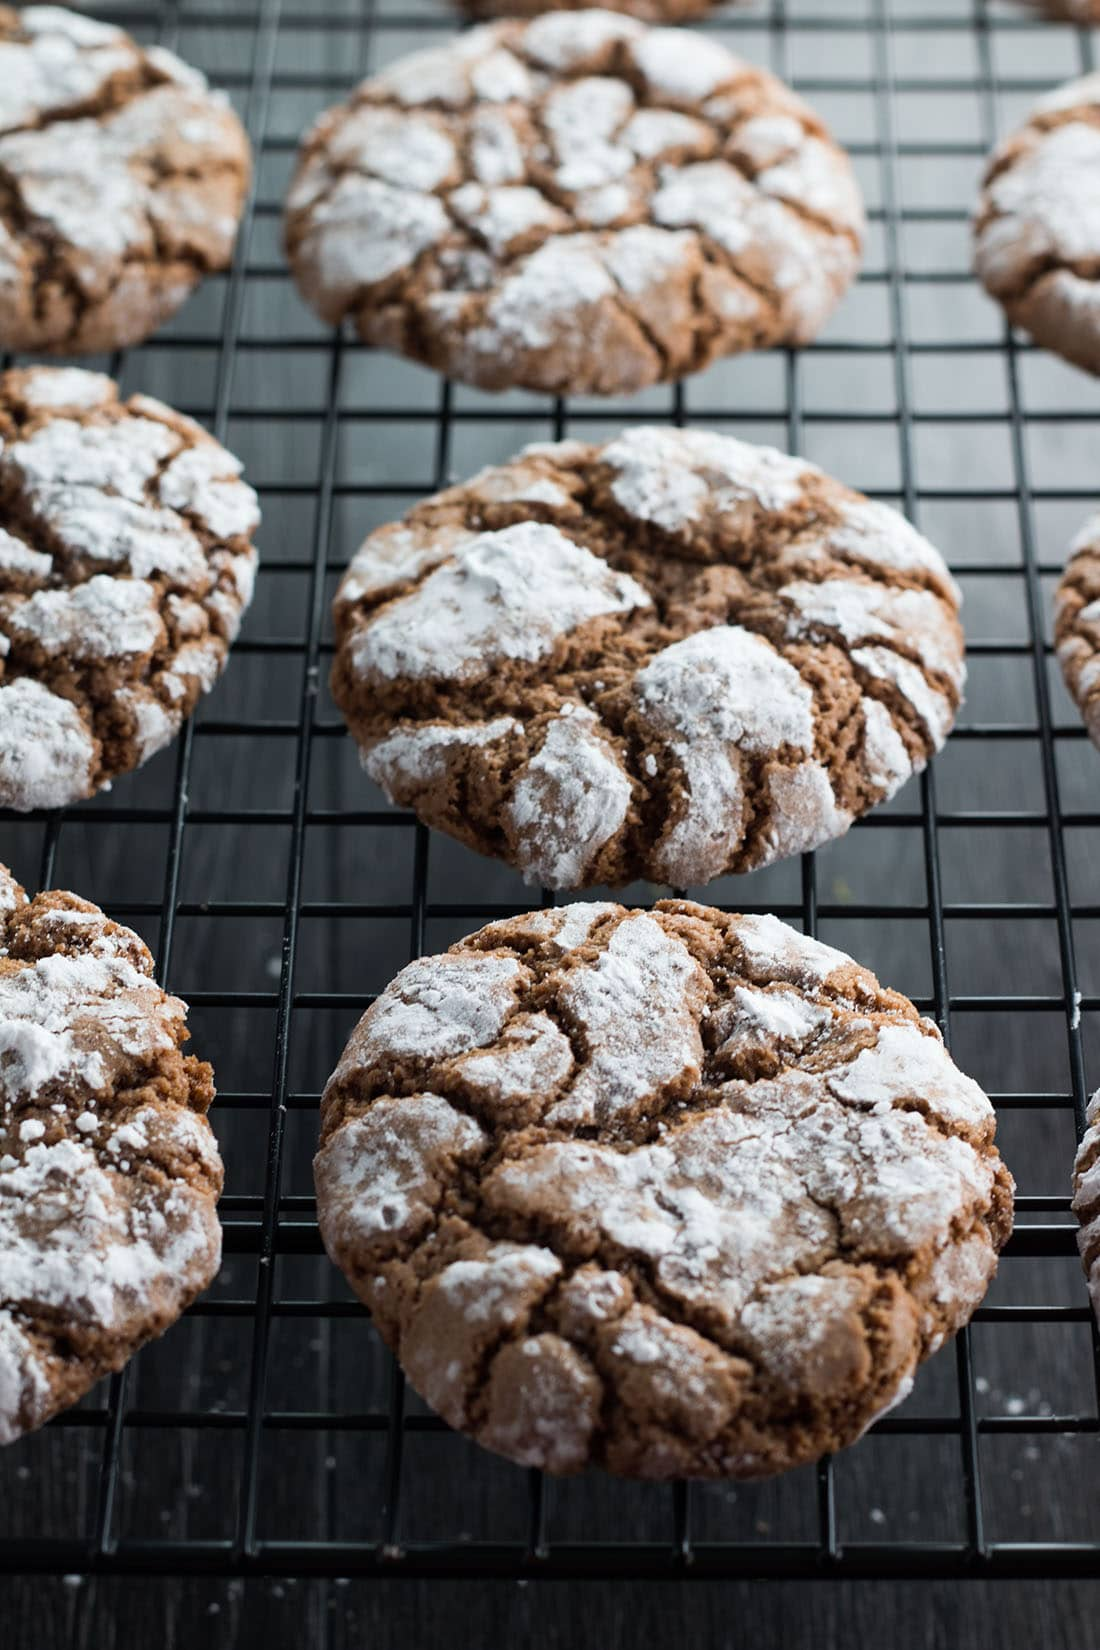 This recipe for Spiced Ginger Crinkle Cookies are ideal for holiday baking. These gingerbread flavored crinkle cookies are full of flavor, chewy, and coated in sugar to reveal their crinkle cookie cracks.